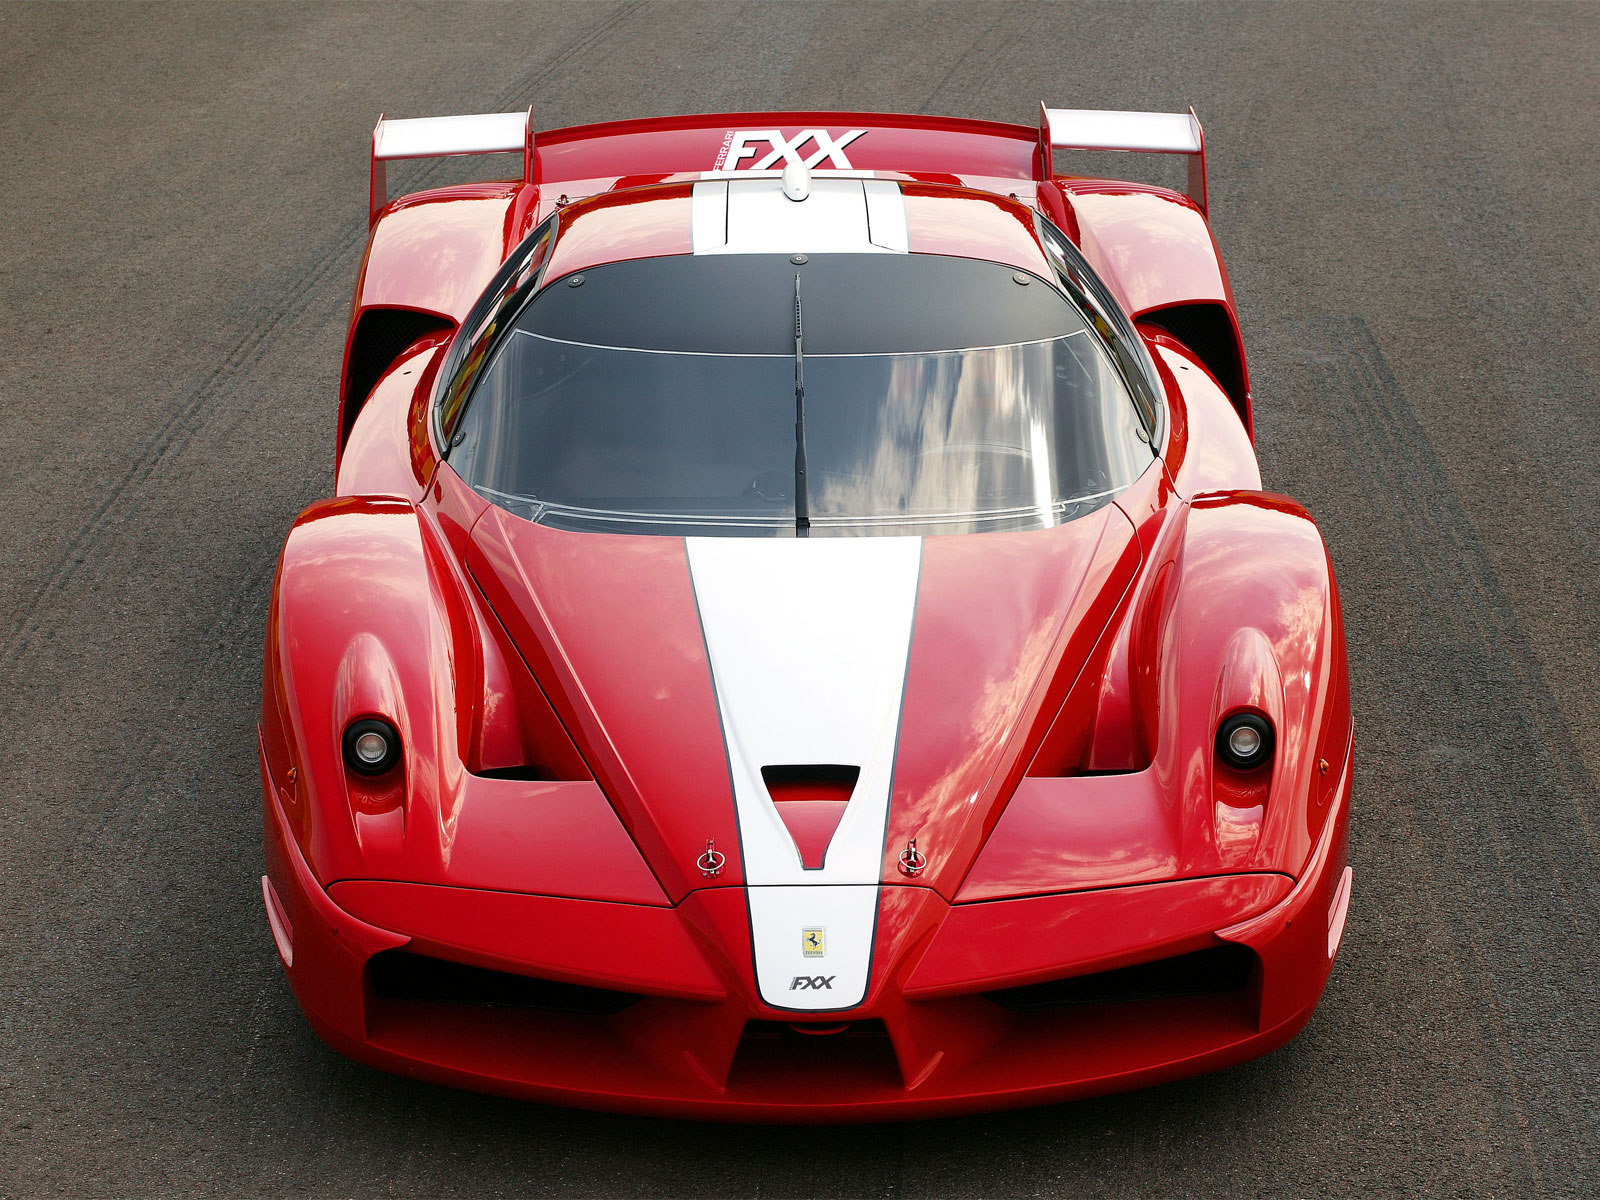 ferrari fxx 1 news. Black Bedroom Furniture Sets. Home Design Ideas